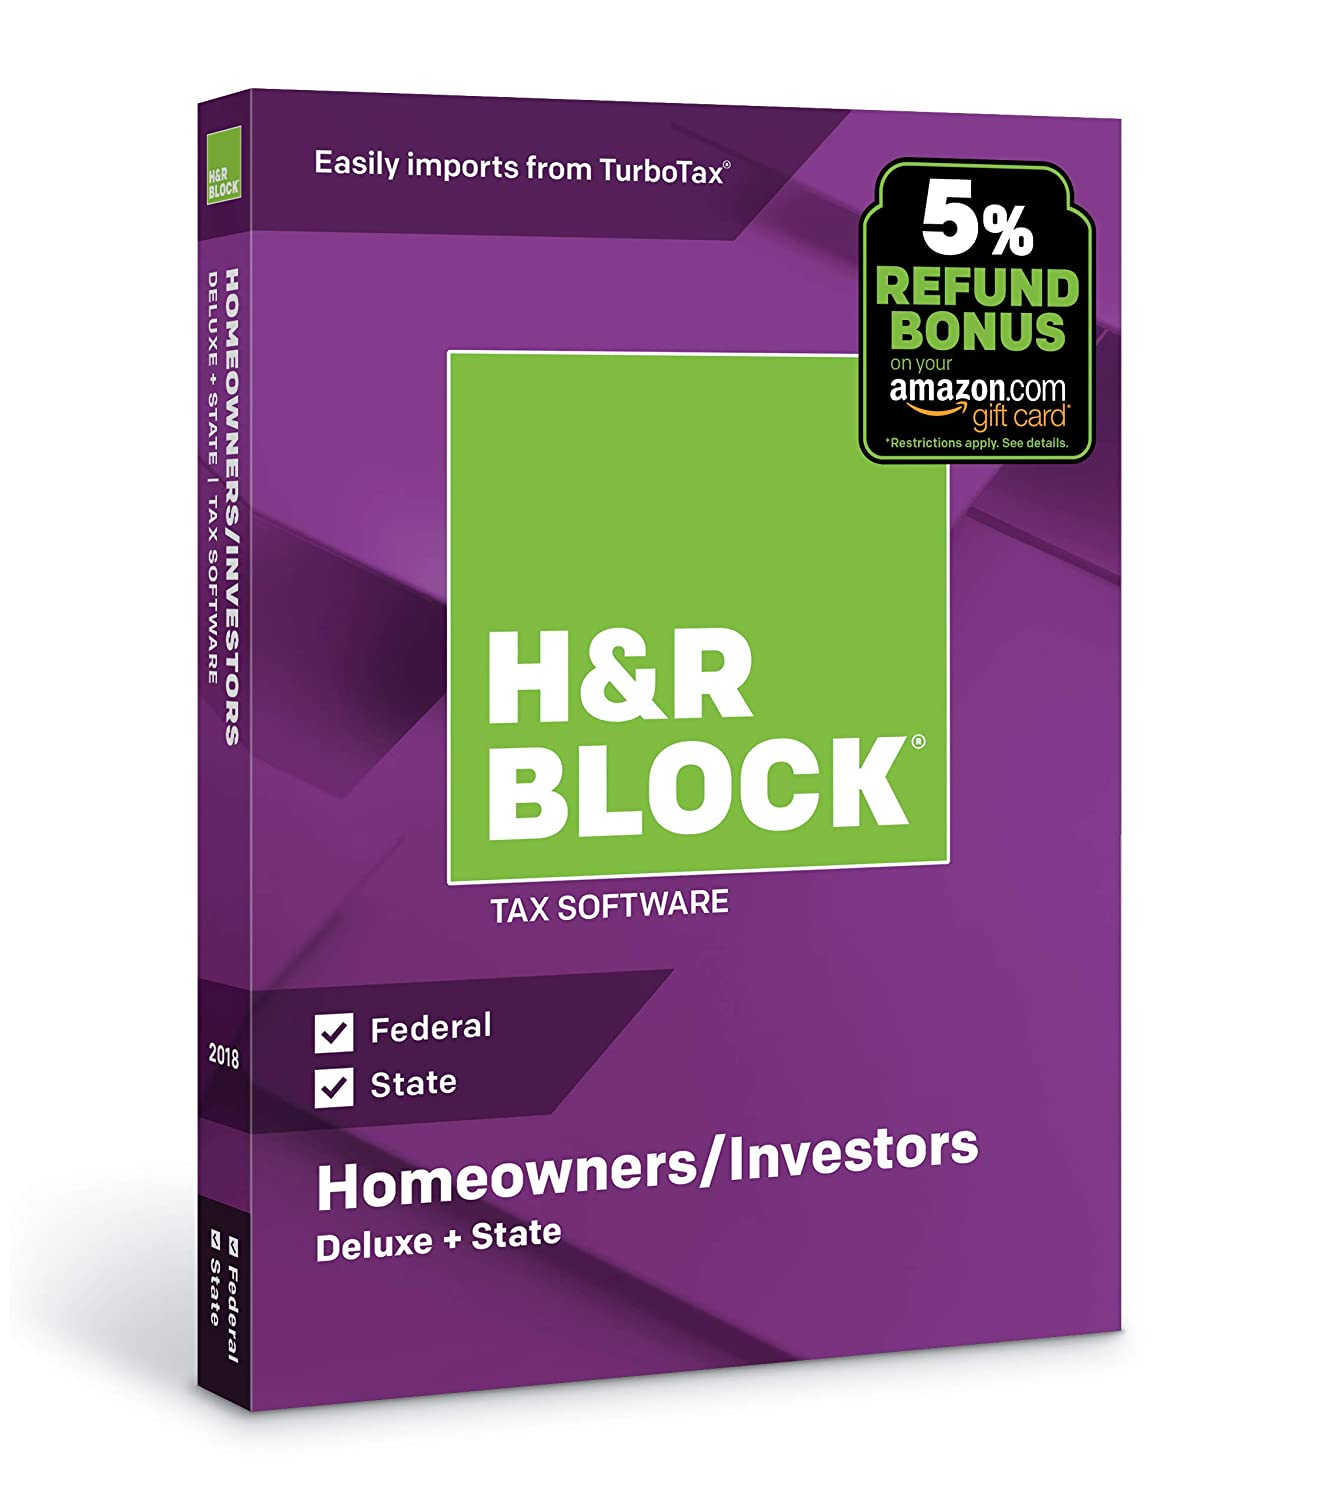 H&R Block Tax Software...